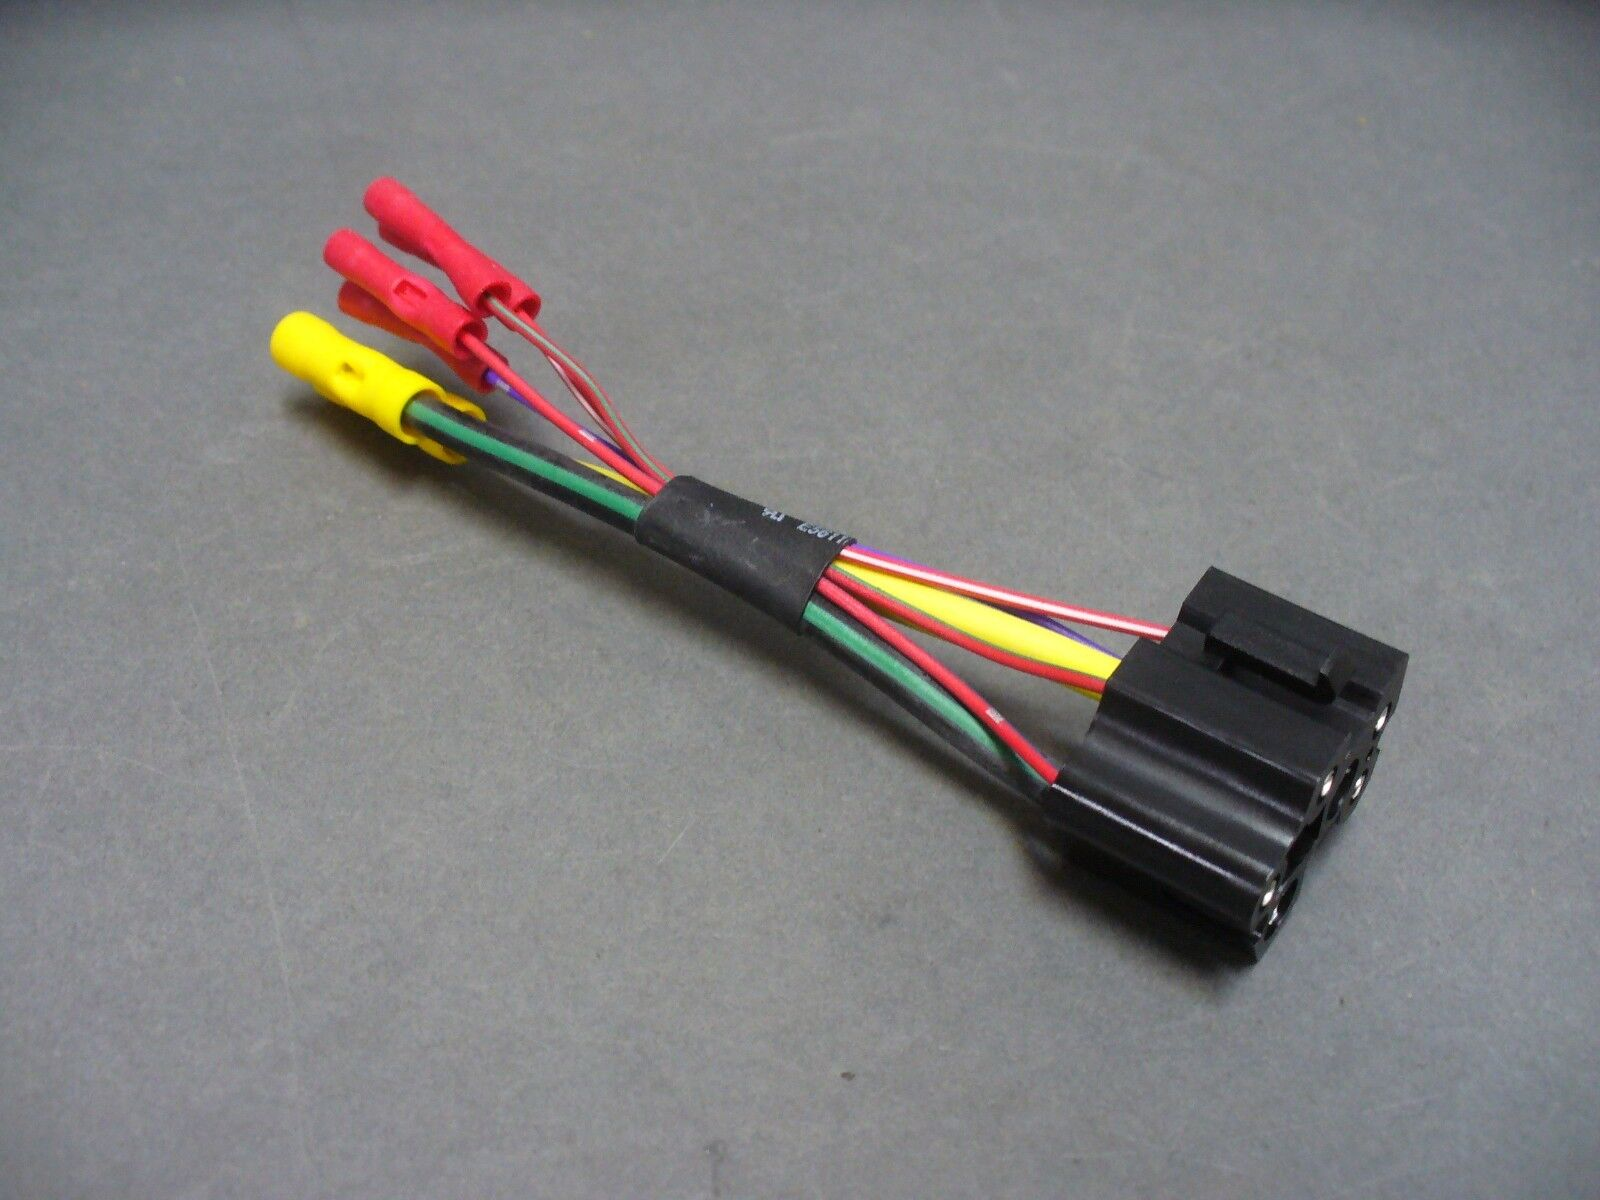 hight resolution of 68 69 ford mercury ignition switch wiring pigtail galaxie mustang ford ignition switch pigtail wiring